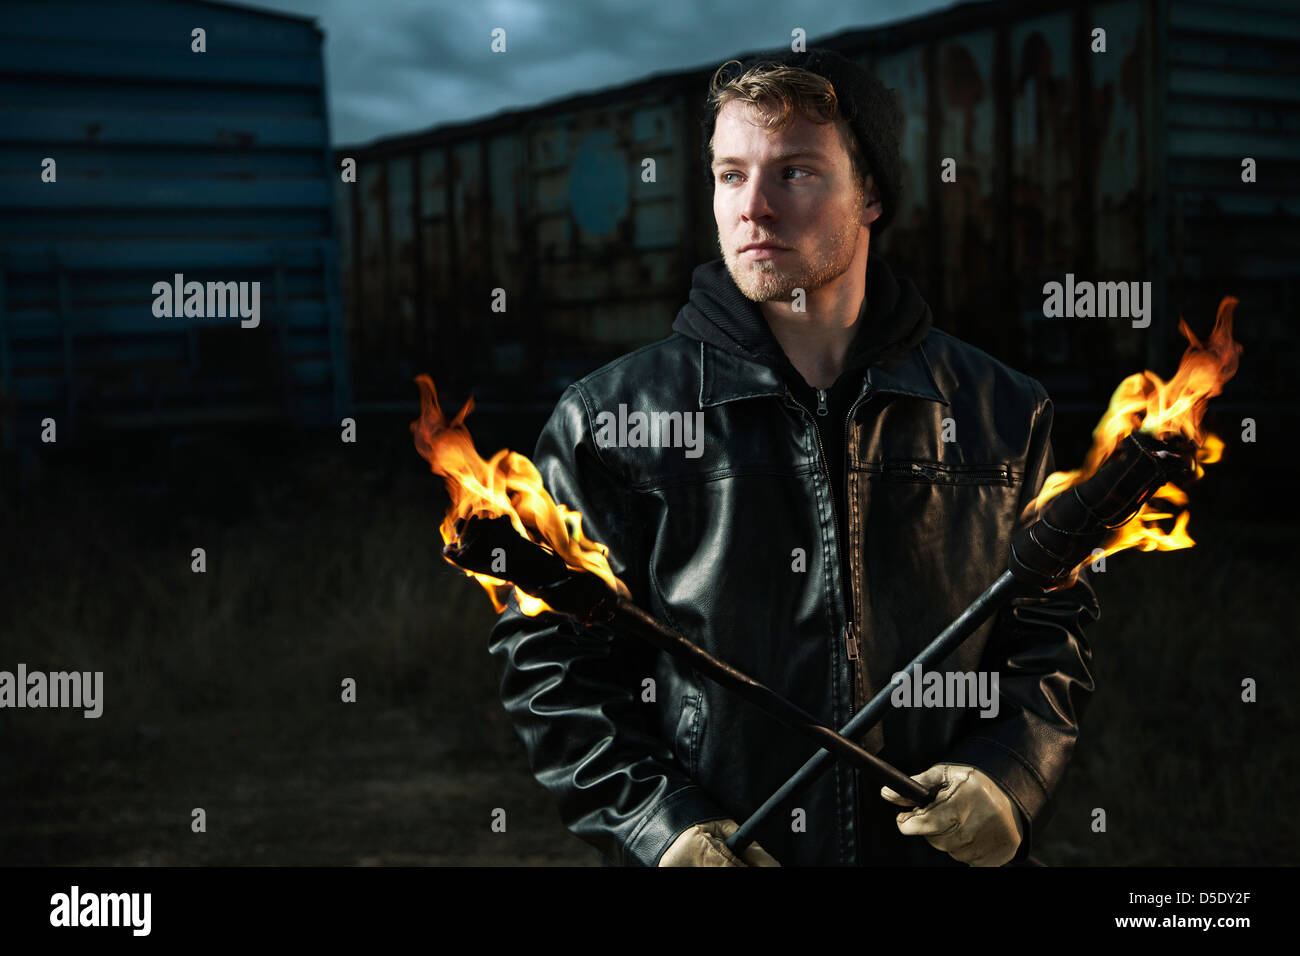 Man holding torches in rail road yard - Stock Image